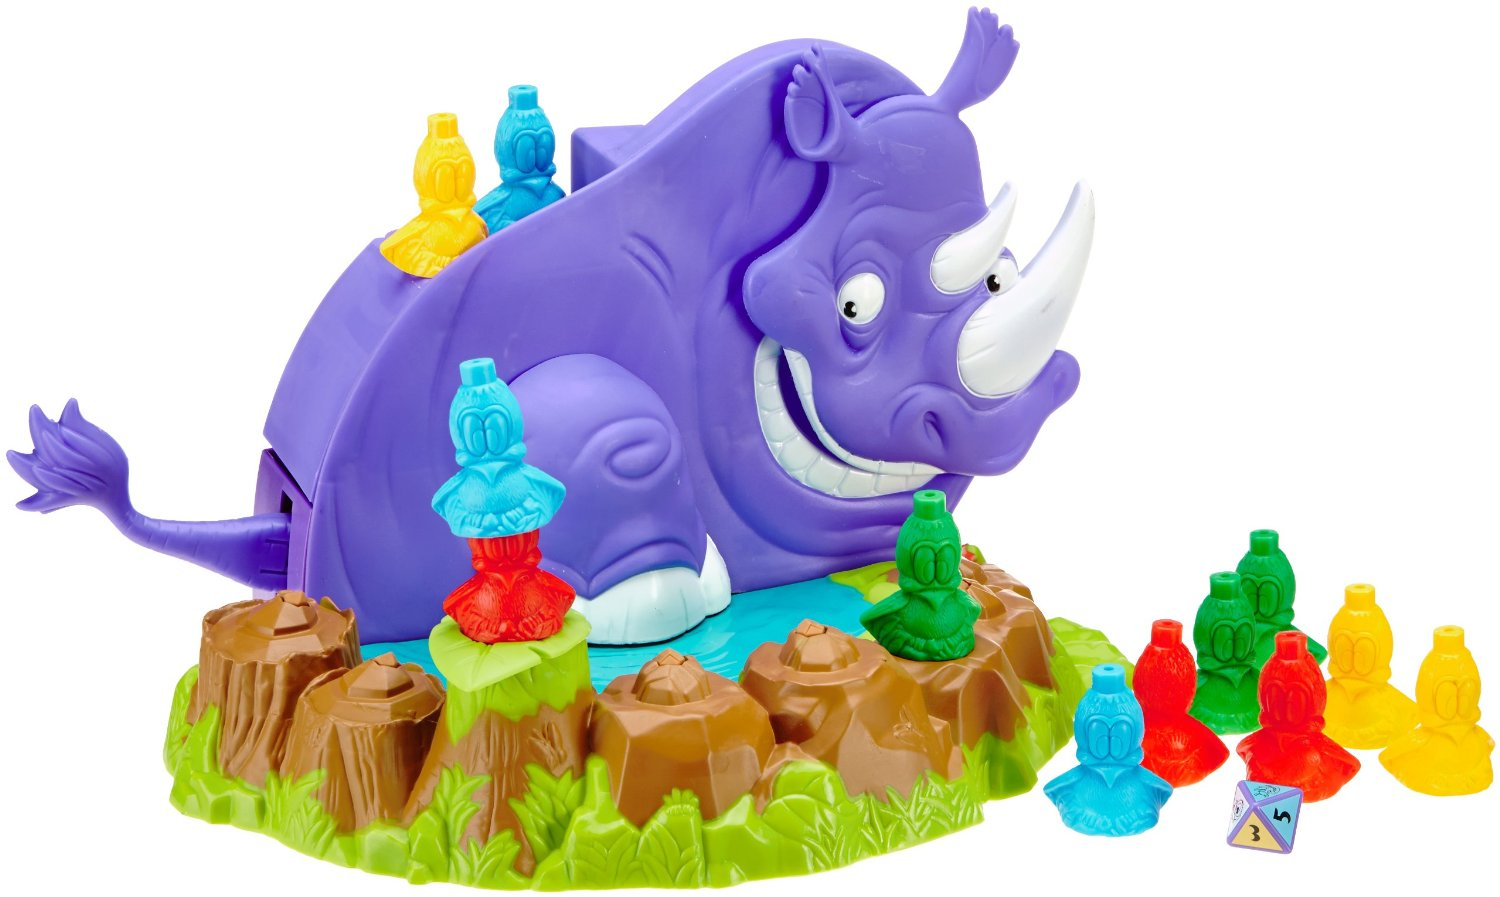 Mattel Rhino Rampage Game He Chomps & Stomps Family Fun by